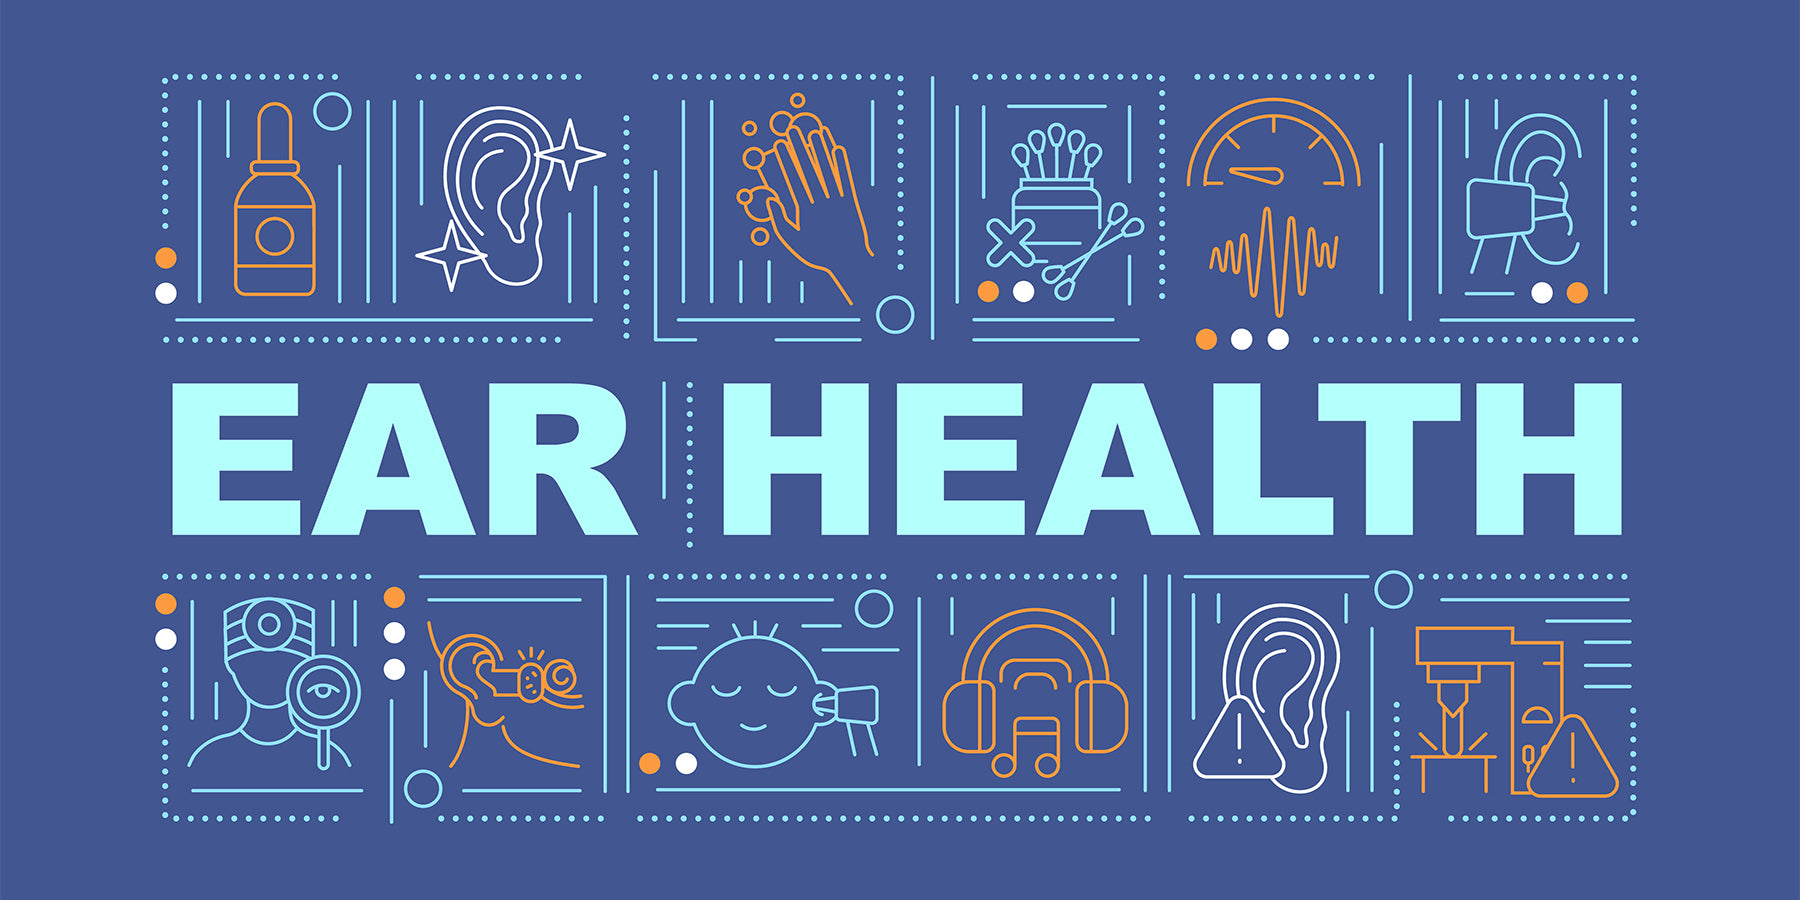 Decorative Illustration with Ear Health typed out and related icons